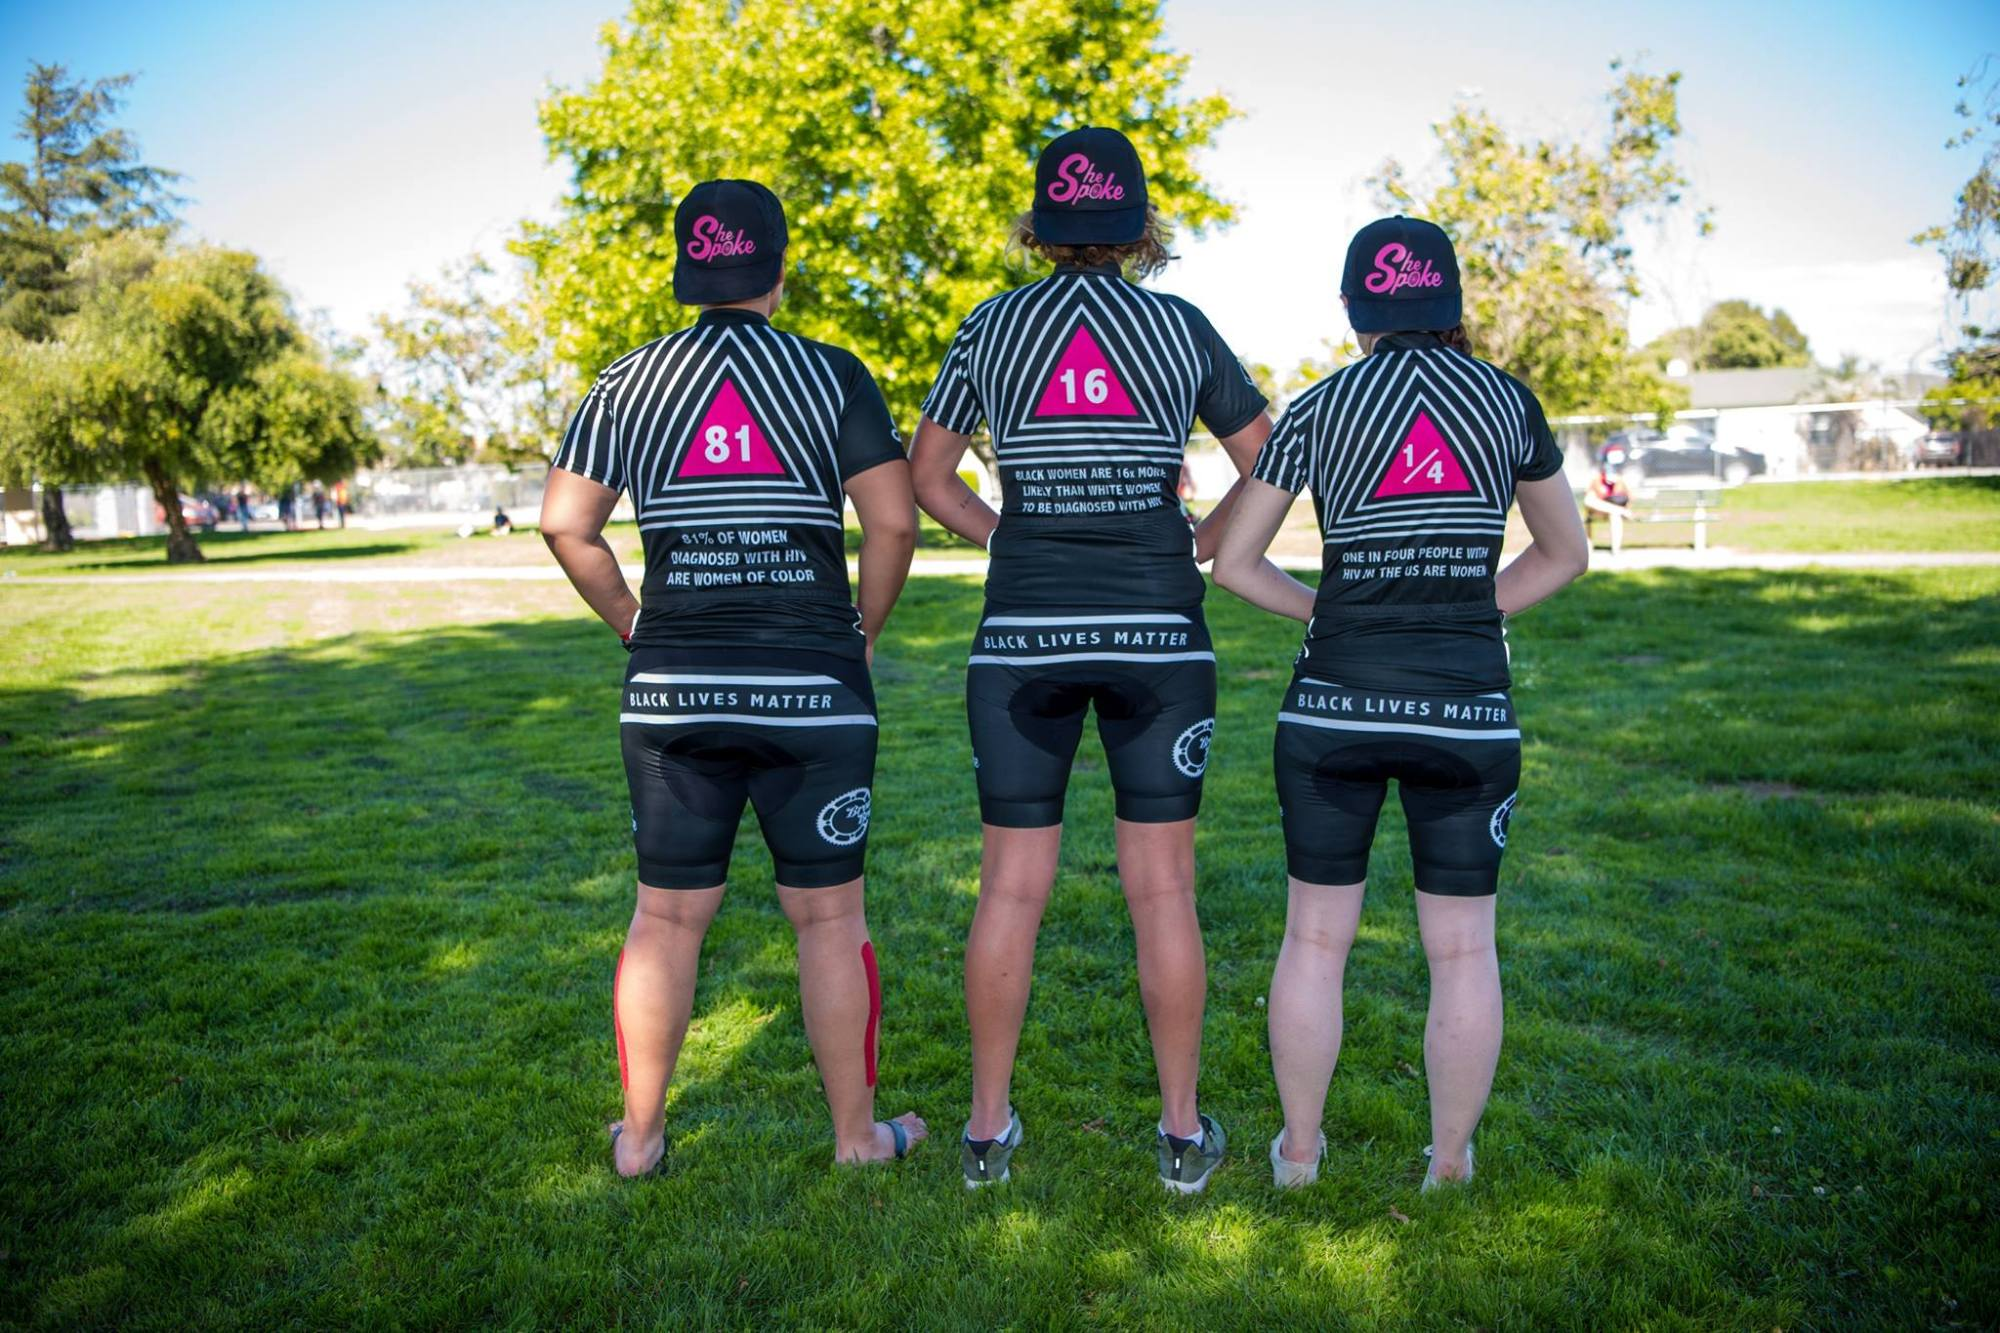 ALC, AIDSLIFECYCLE, Lifecycle, AIDS/Lifecycle, Custom kits, bike kits, silence is death, silence equals death, silence = death, jakroo, shespoke, bike kits, custom bike kits, design, bike kit design, custom kits, black lives matter, hiv awareness, aids awareness, hiv, aids